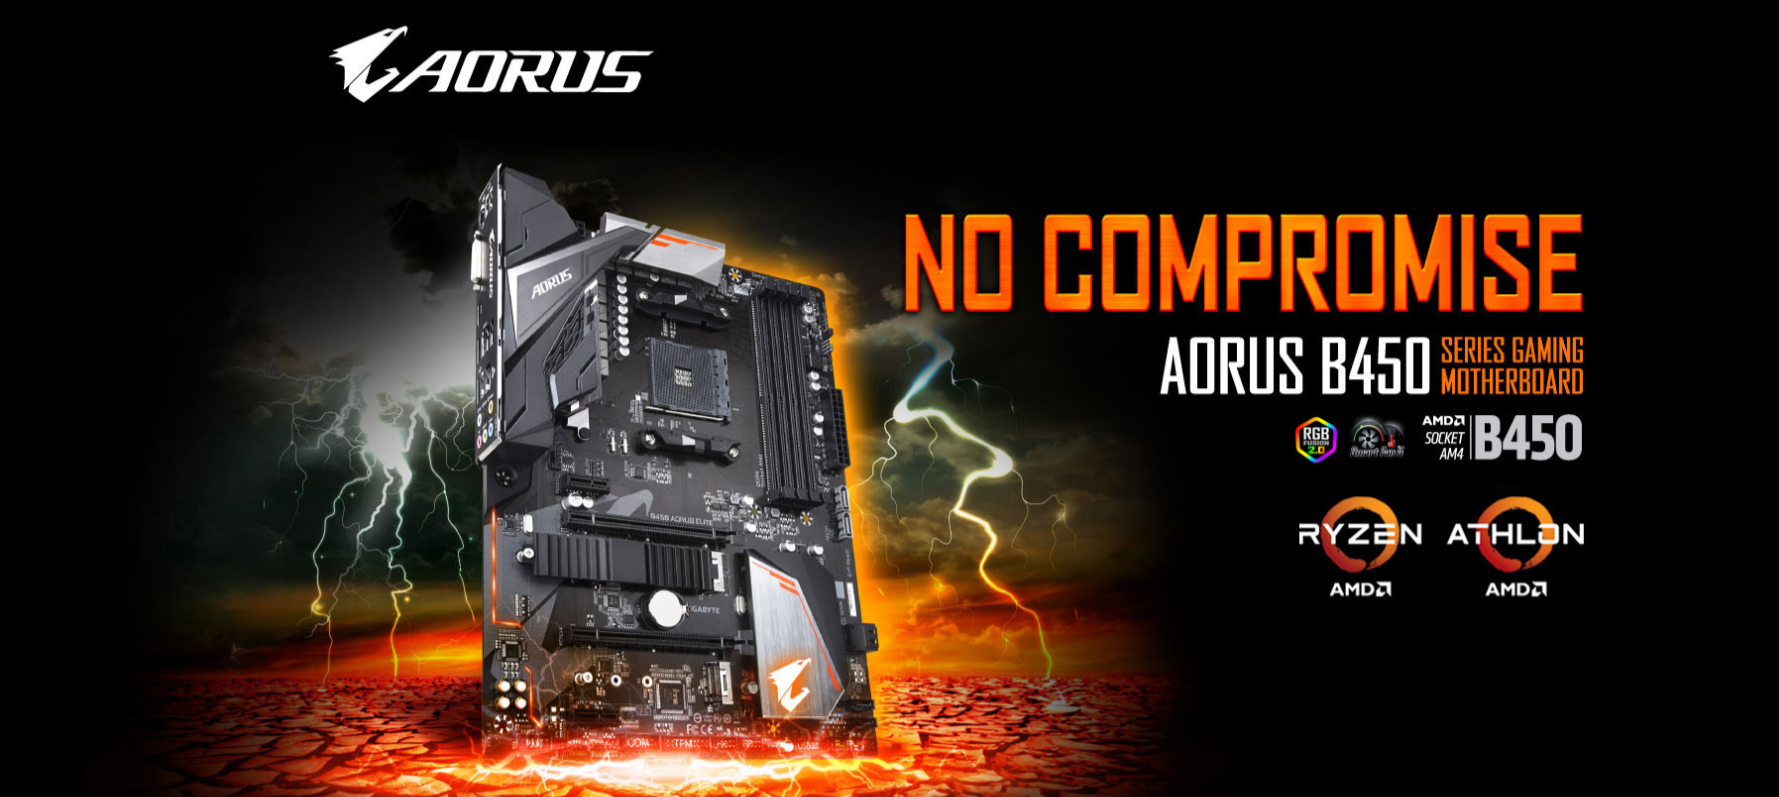 Gigabyte B450 AORUS ELITEMOTHERBOARD pc builder simulator, pc build india, Easy PC Builder | Build Your Own Gaming PC, Build Guides, custom pc builder, pc build generator, gaming pc, pc build excel template, best custom pc builder website, build your own pc, Custom PC Part Picker Tool to Build Your PC, Use our PC Builder to design and configure your own Custom PC. Be it a high-end gaming rig, or a small office workstation our configurator lets you pick, Custom Built Workstation Desktops, Gaming Buy Workstations Desktops Servers Gaming PC & Accessories. Customize according to your requirements Fast Delivery Onsite Warranty Exclusive AMD RYZENTM 3000XT SERIES PC BUILDS WORKSTATION FOR AI & DEEP LEARNING Especially Designed For AI And Machine Learning